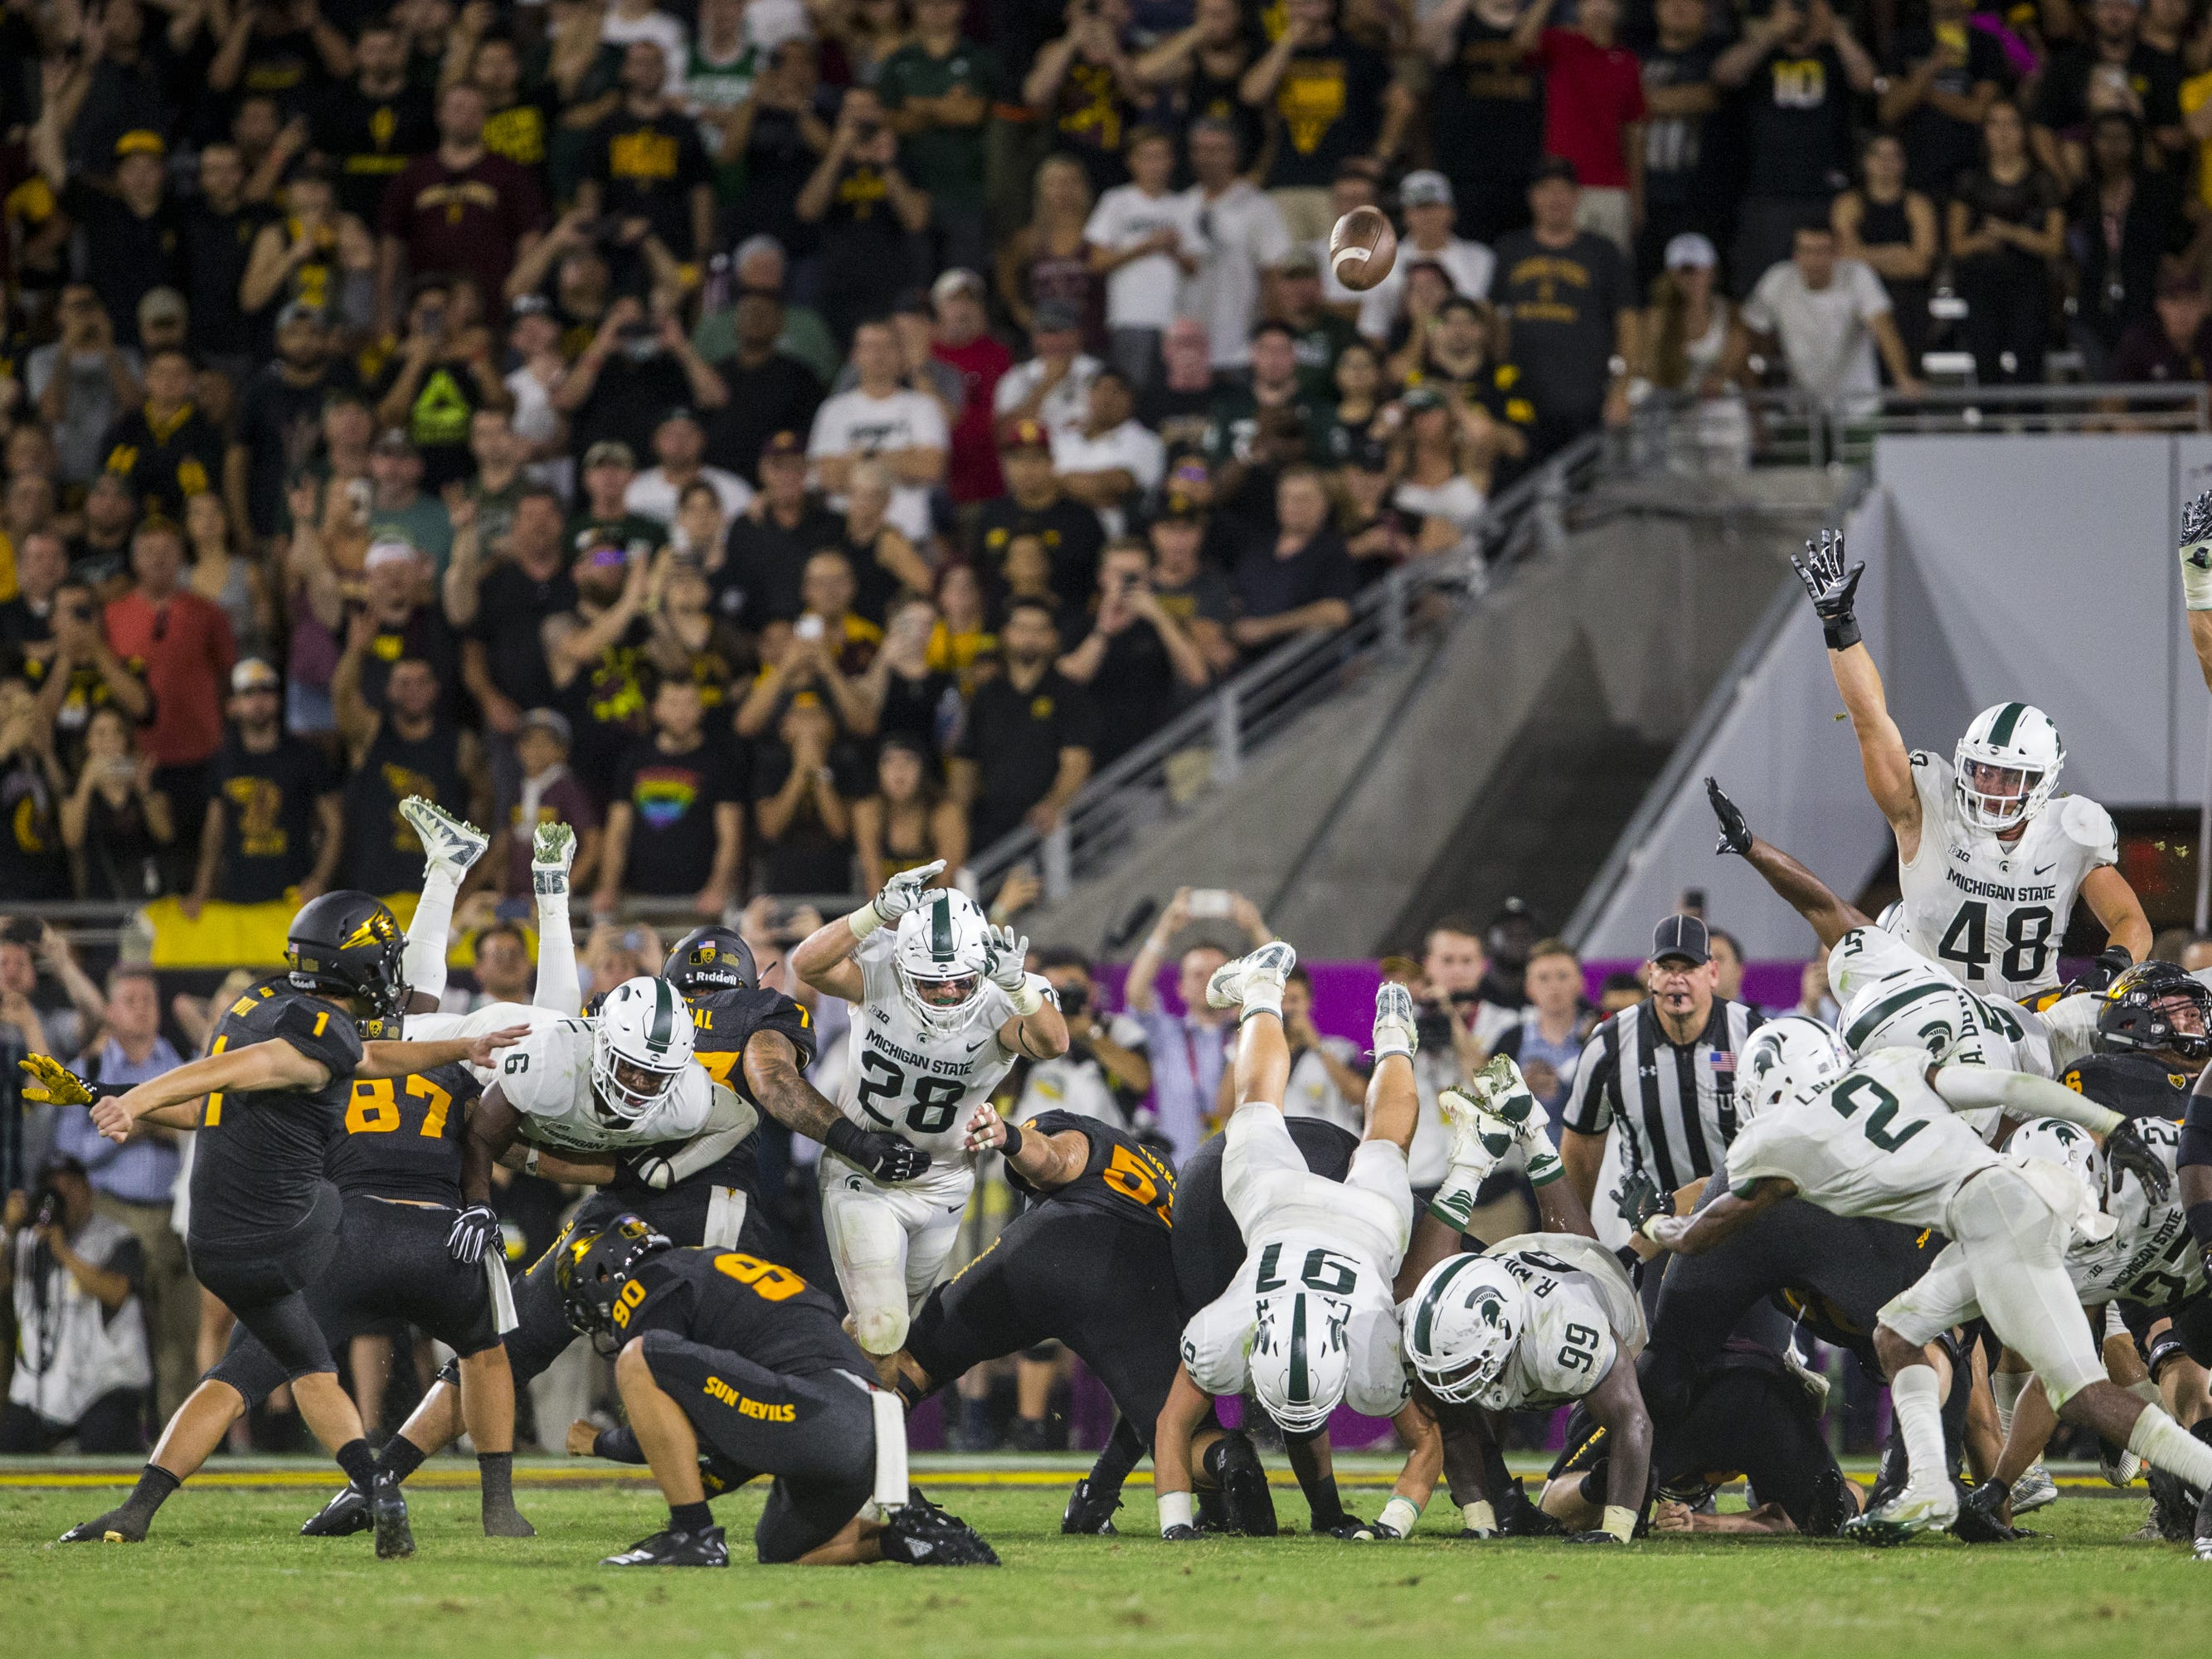 Arizona State's Brandon Ruiz kicks the game-winning field goal against Michigan State in the 4th quarter on Saturday, Sept. 8, 2018, at Sun Devil Stadium in Tempe, Ariz. Arizona State won, 16-13.